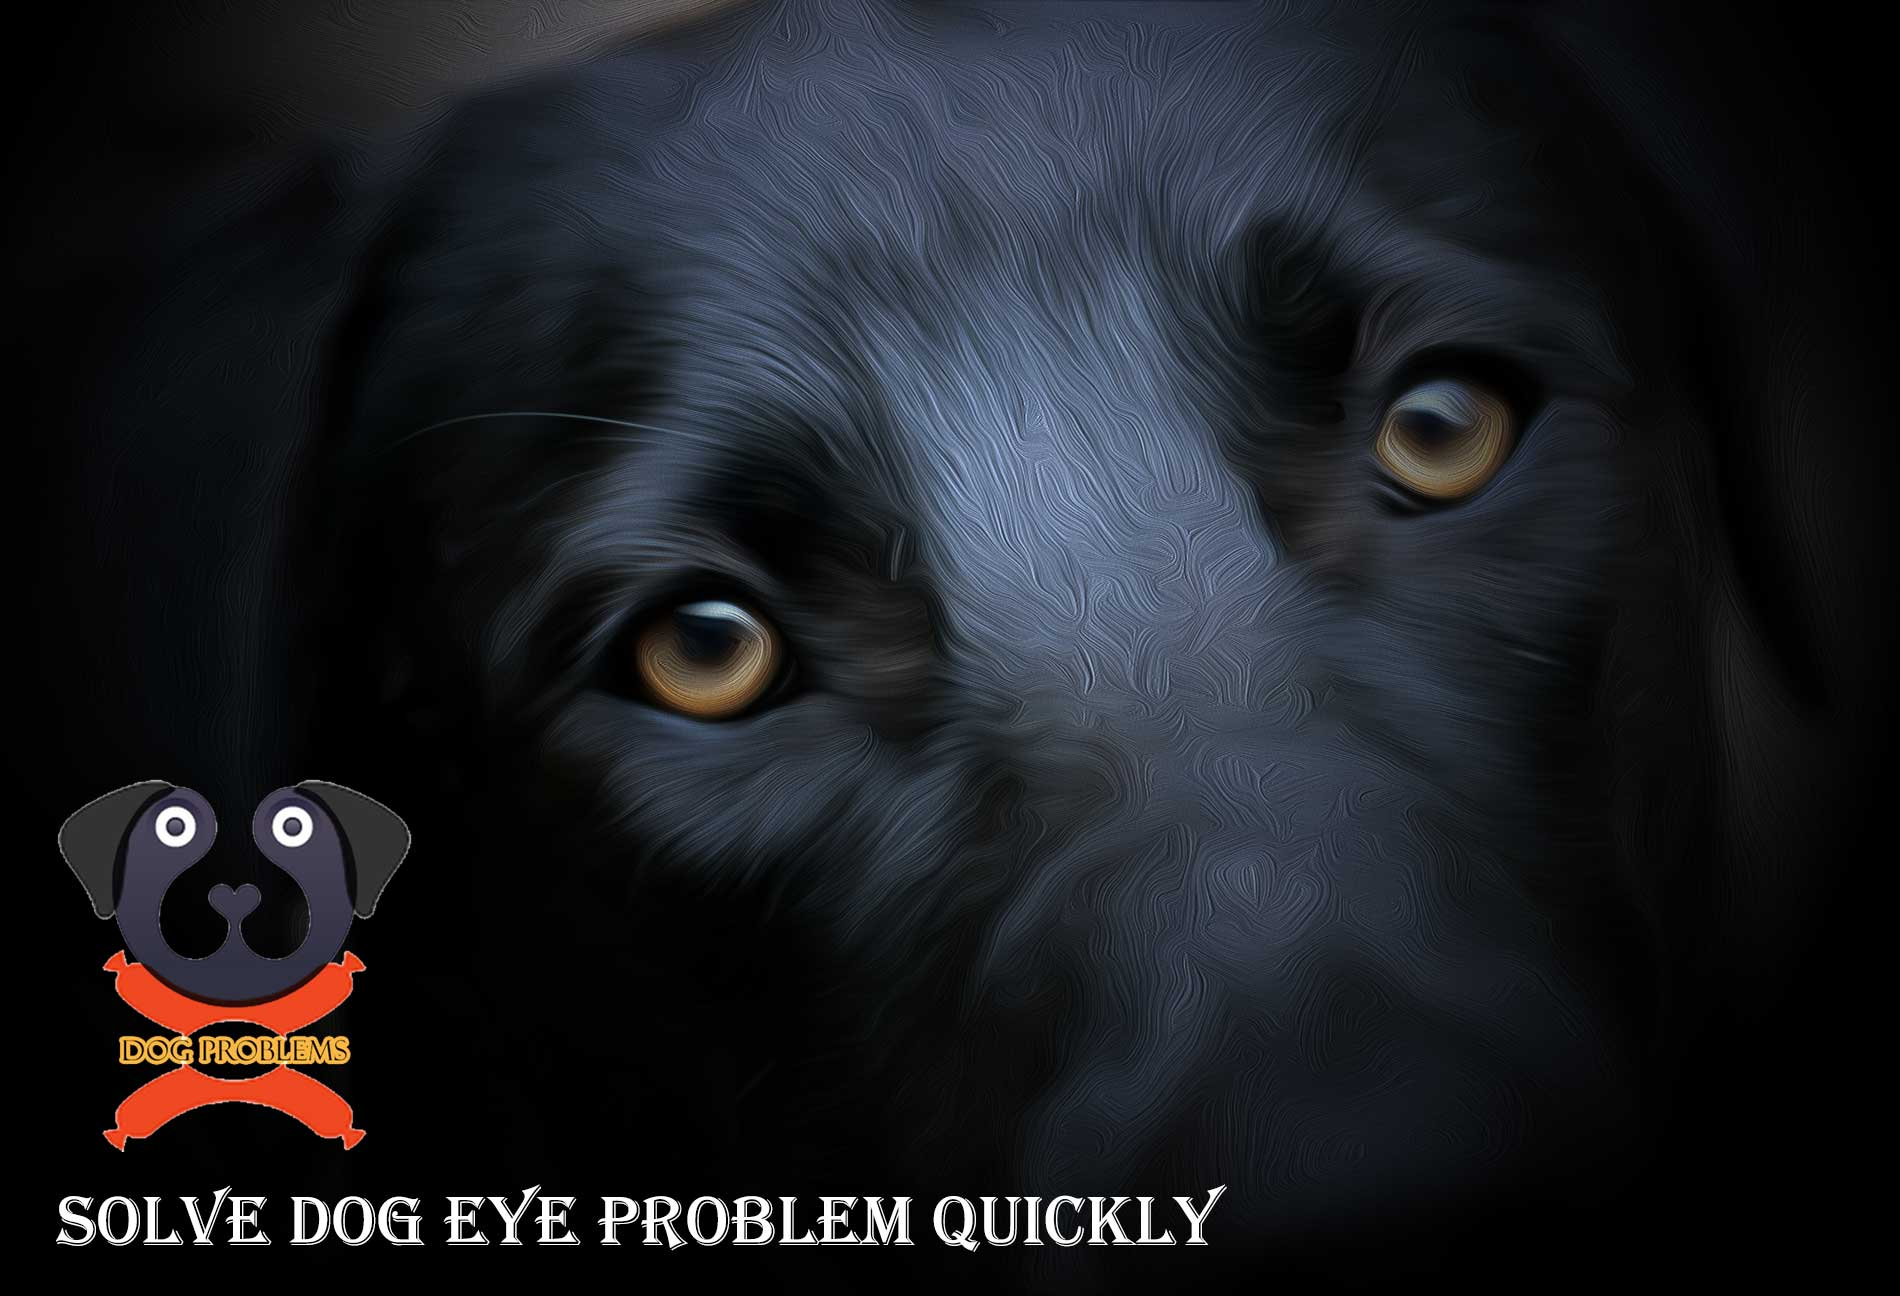 Solve Dog Eye Problem From Now